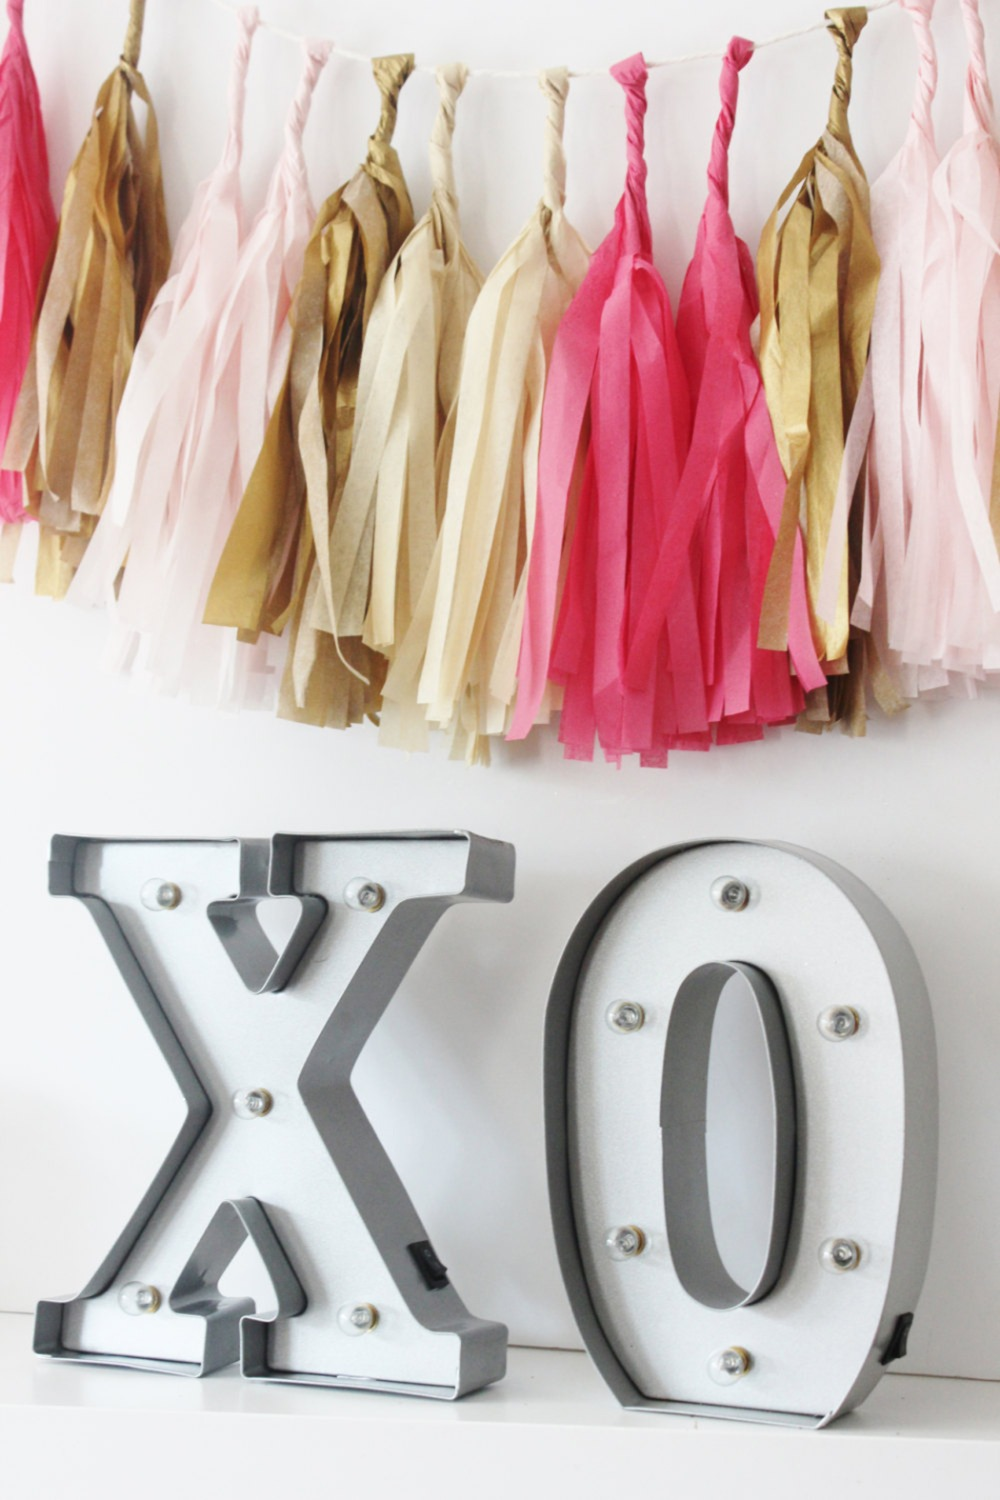 xo light up marquee sign